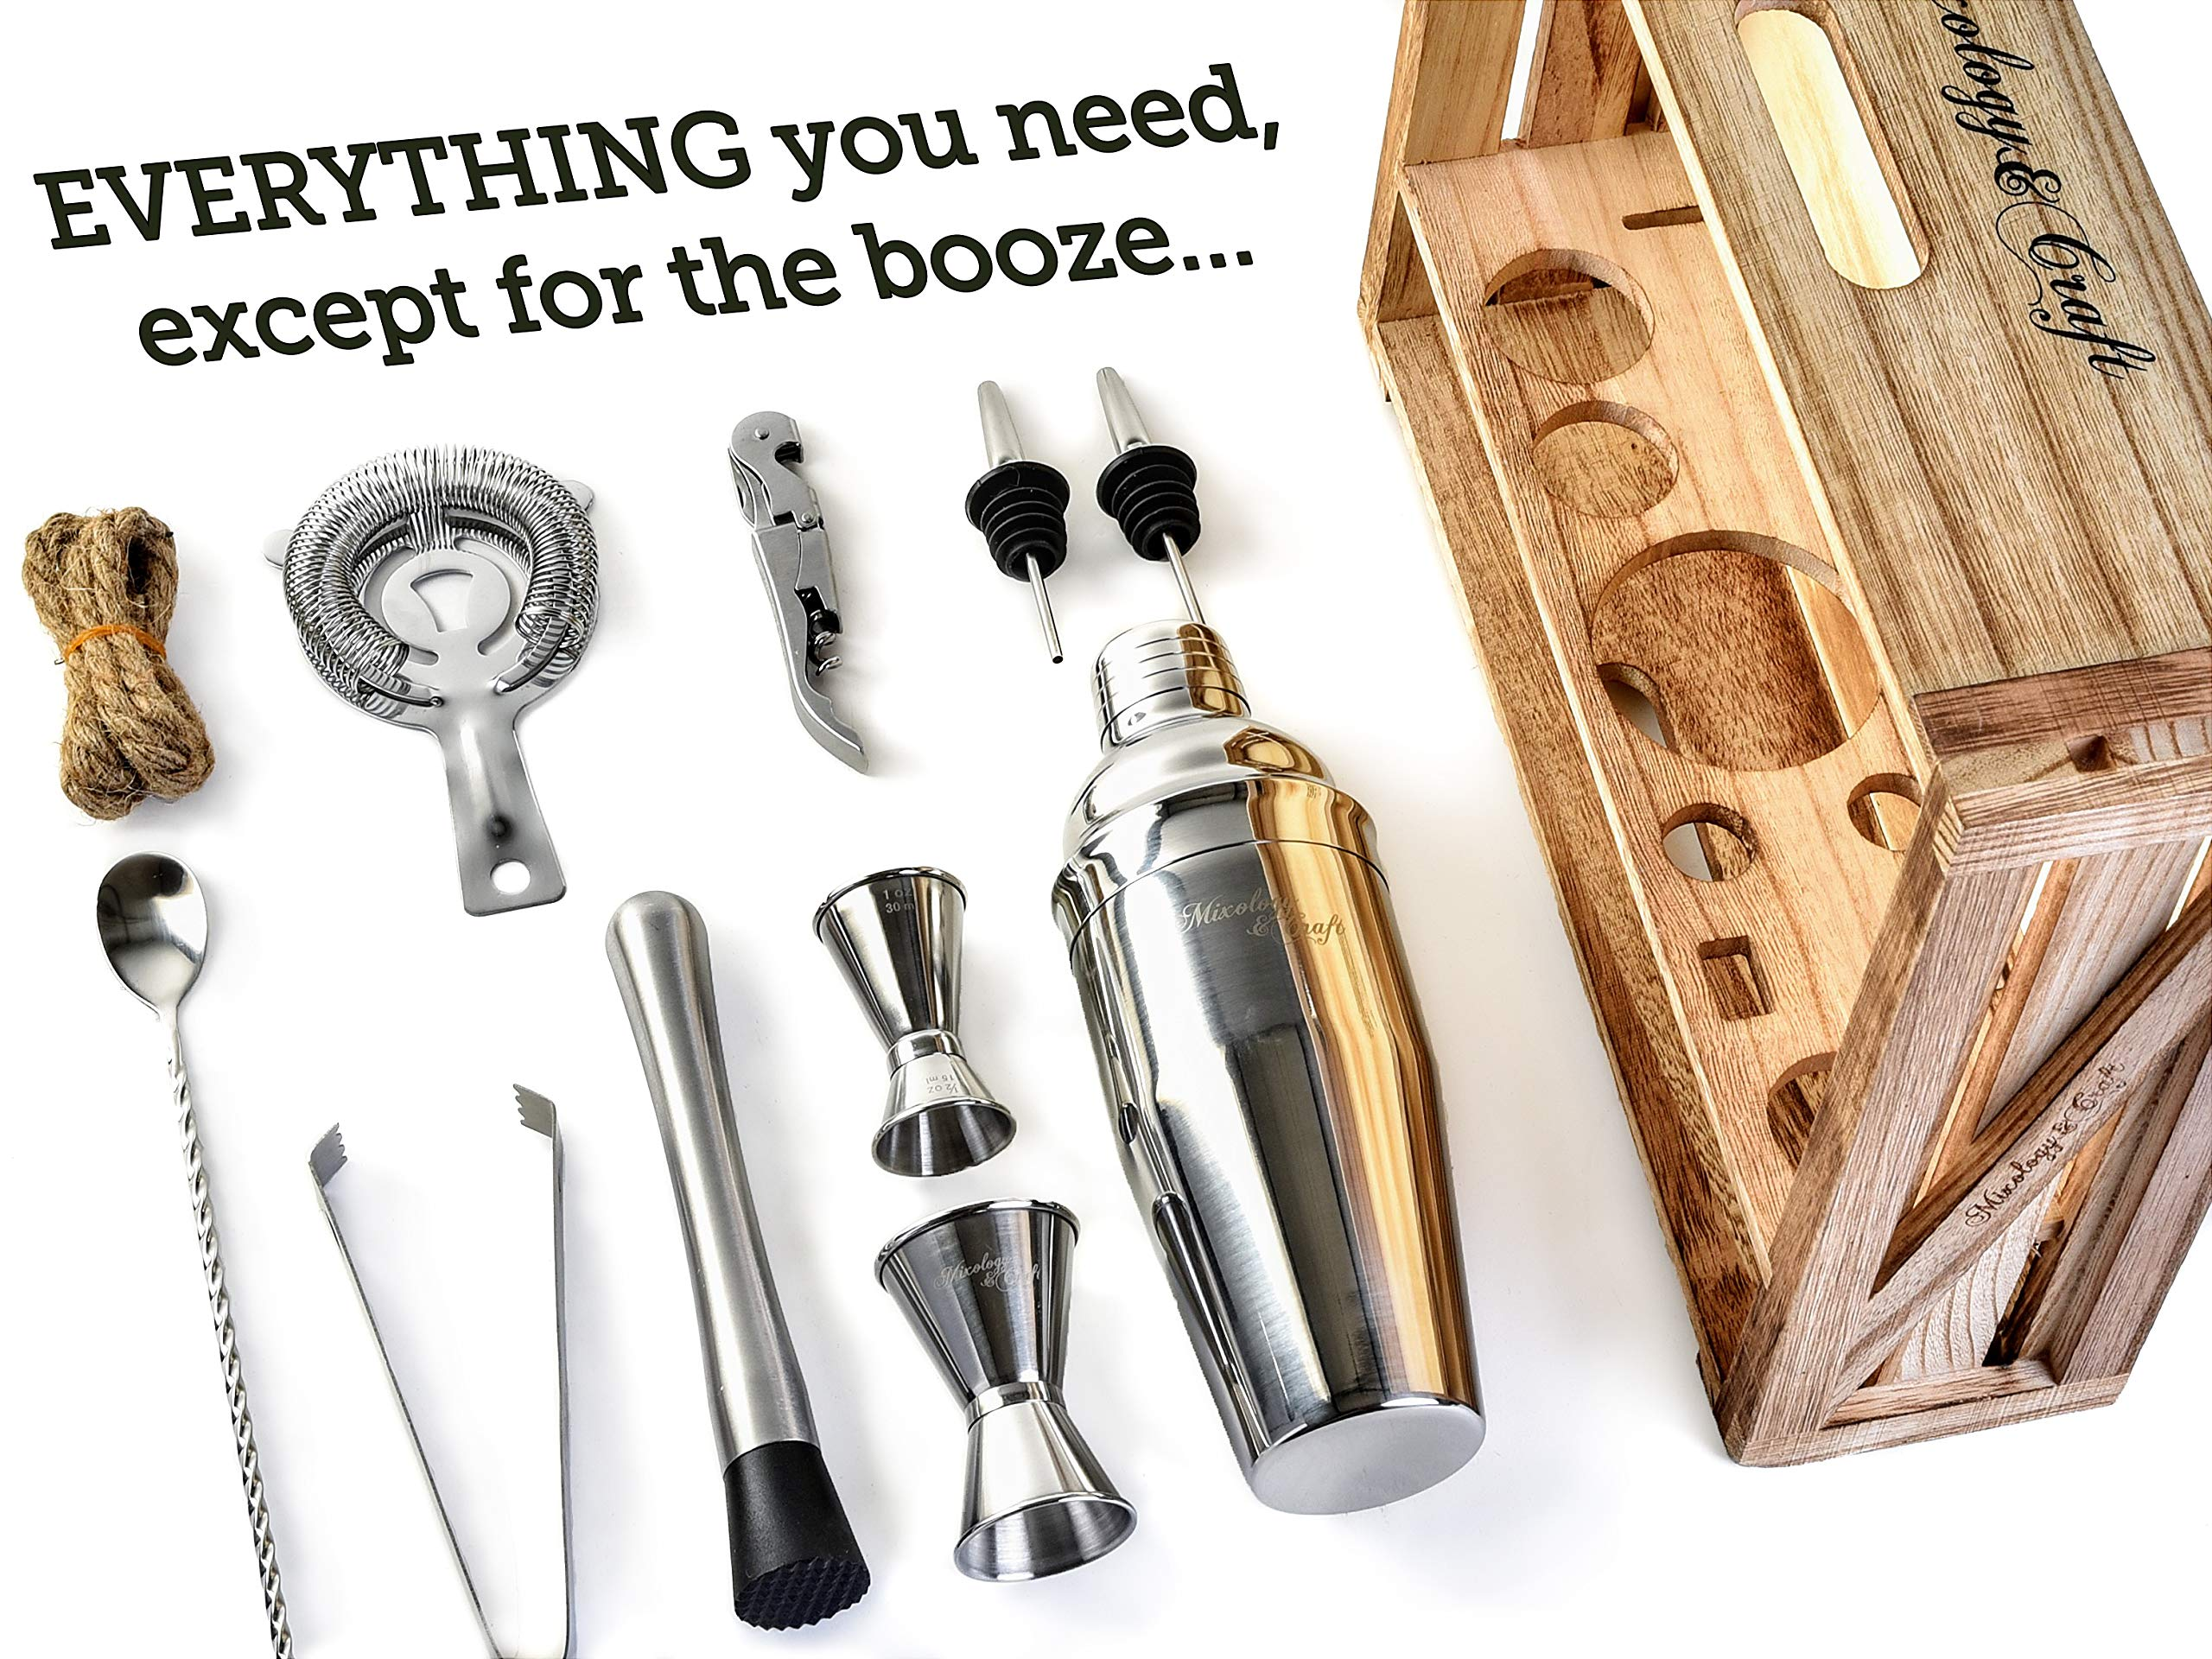 Mixology Bartender Kit: 11-Piece Bar Tool Set with Rustic Wood Stand - Perfect Home Bartending Kit and Cocktail Shaker Set For an Awesome Drink Mixing Experience - Exclusive Cocktail Recipes Bonus by Mixology & Craft (Image #2)